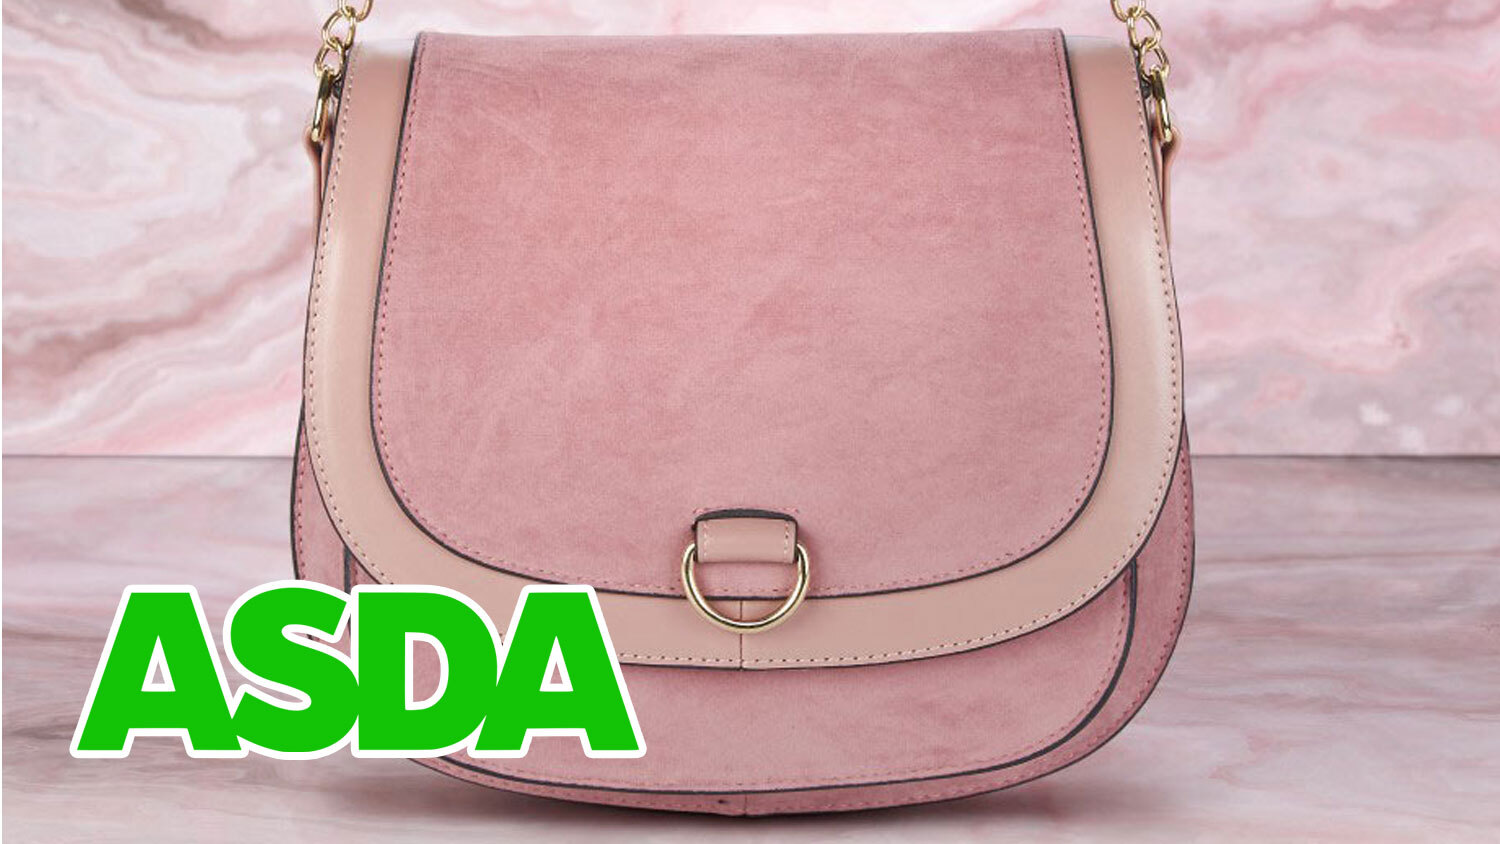 All of Asda's George Handbags Are Now Made With Vegan Leather